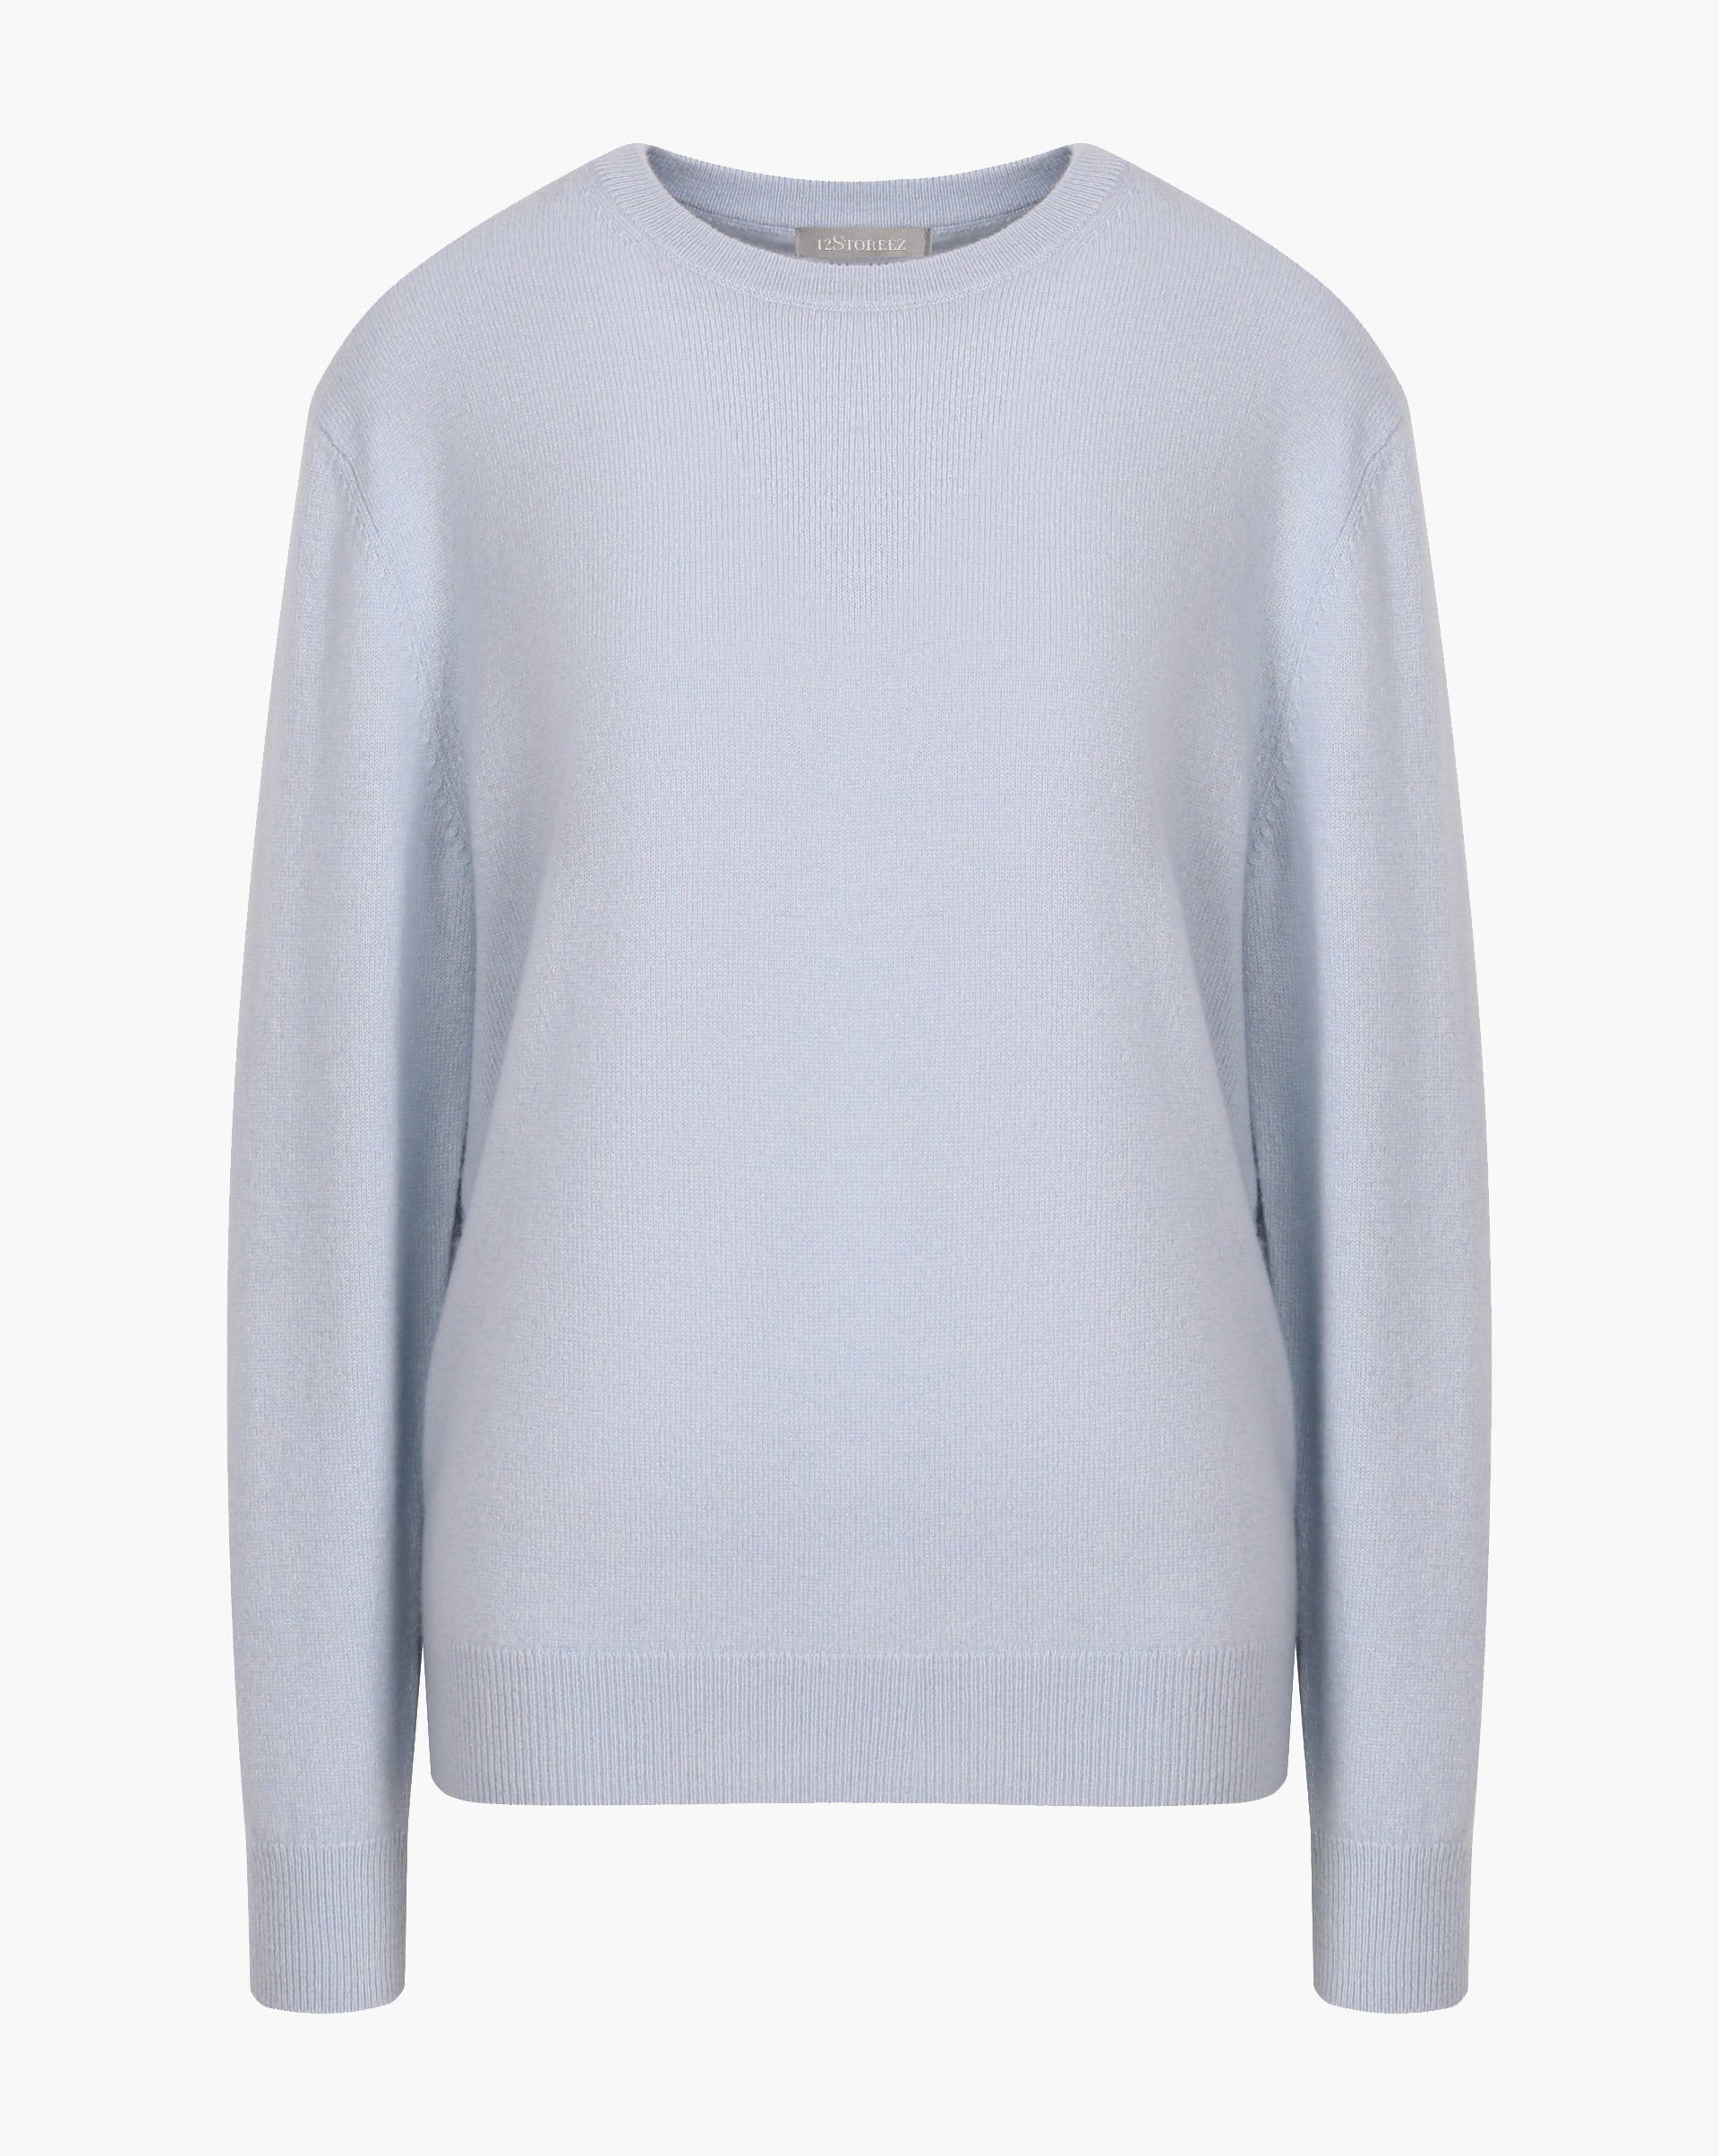 100% cashmere crew neck jumper